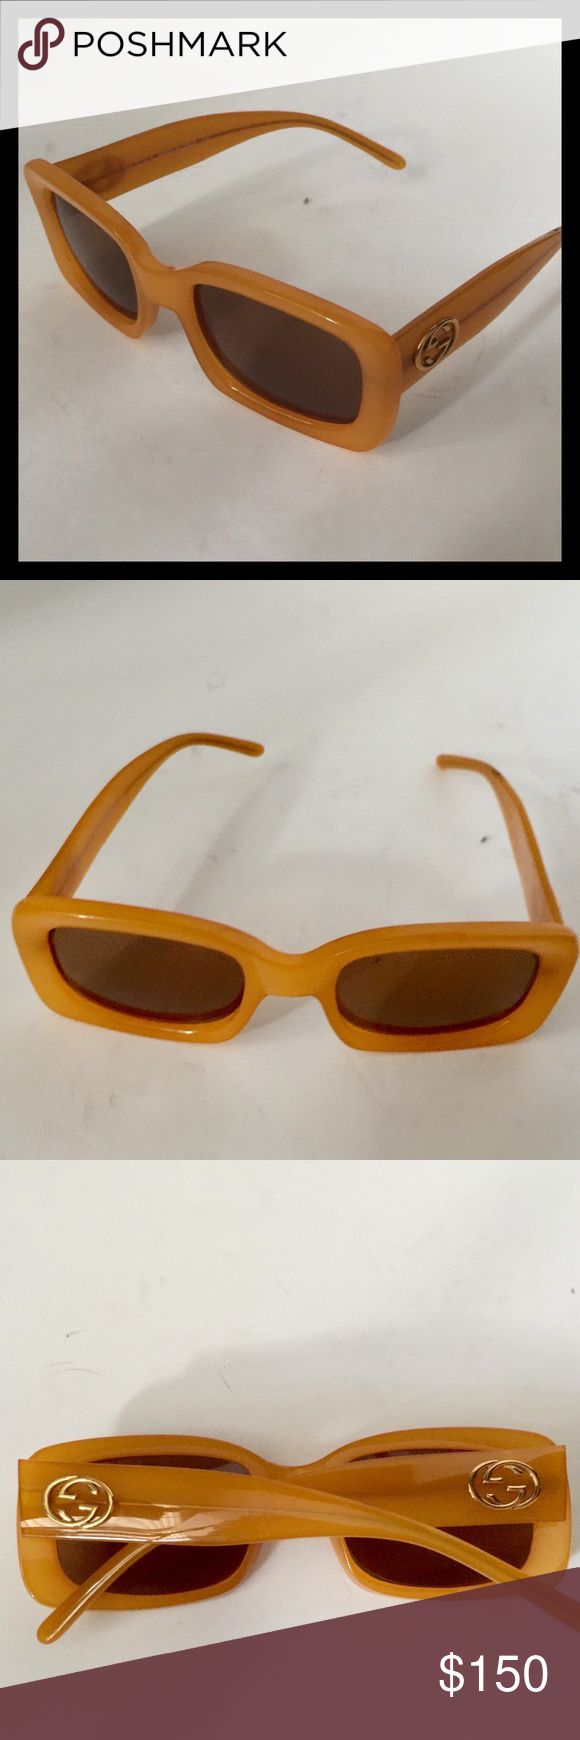 "a49c4e1740267 Measurements  6""L x 6""W x 1.5""H Color  Orange Style Collection  135 GG 2407 S  XD8 Gucci Accessories Sunglasses"